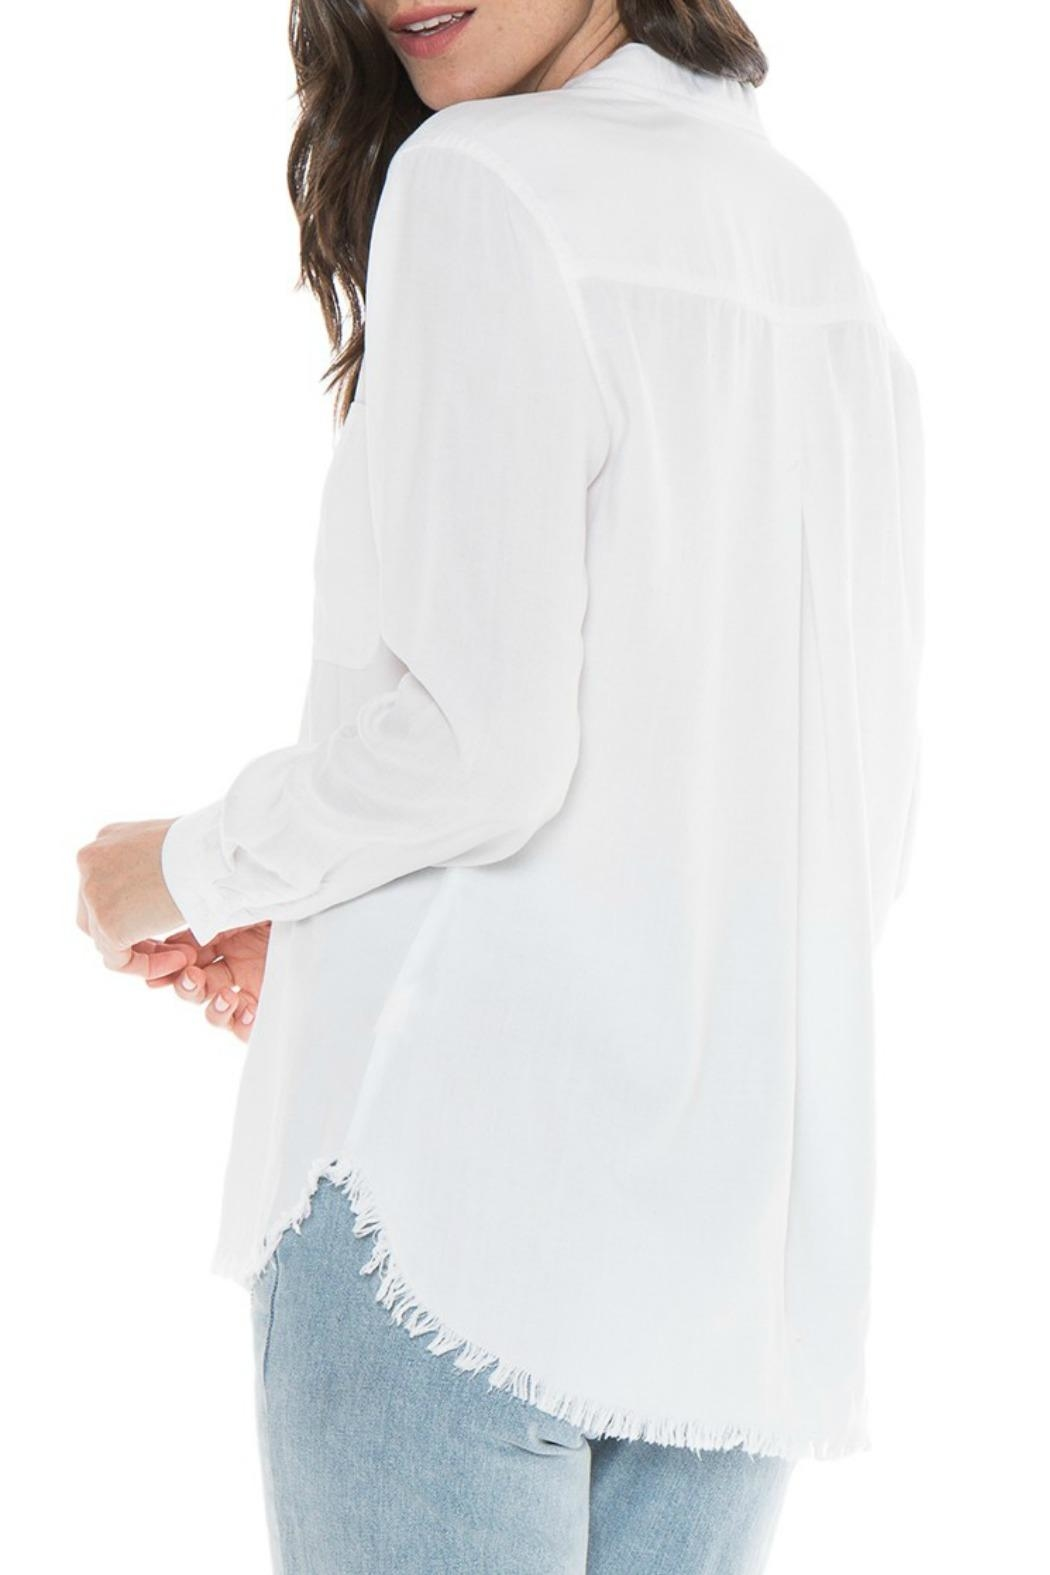 Bella Dahl Button Down Frayed Top - Front Full Image